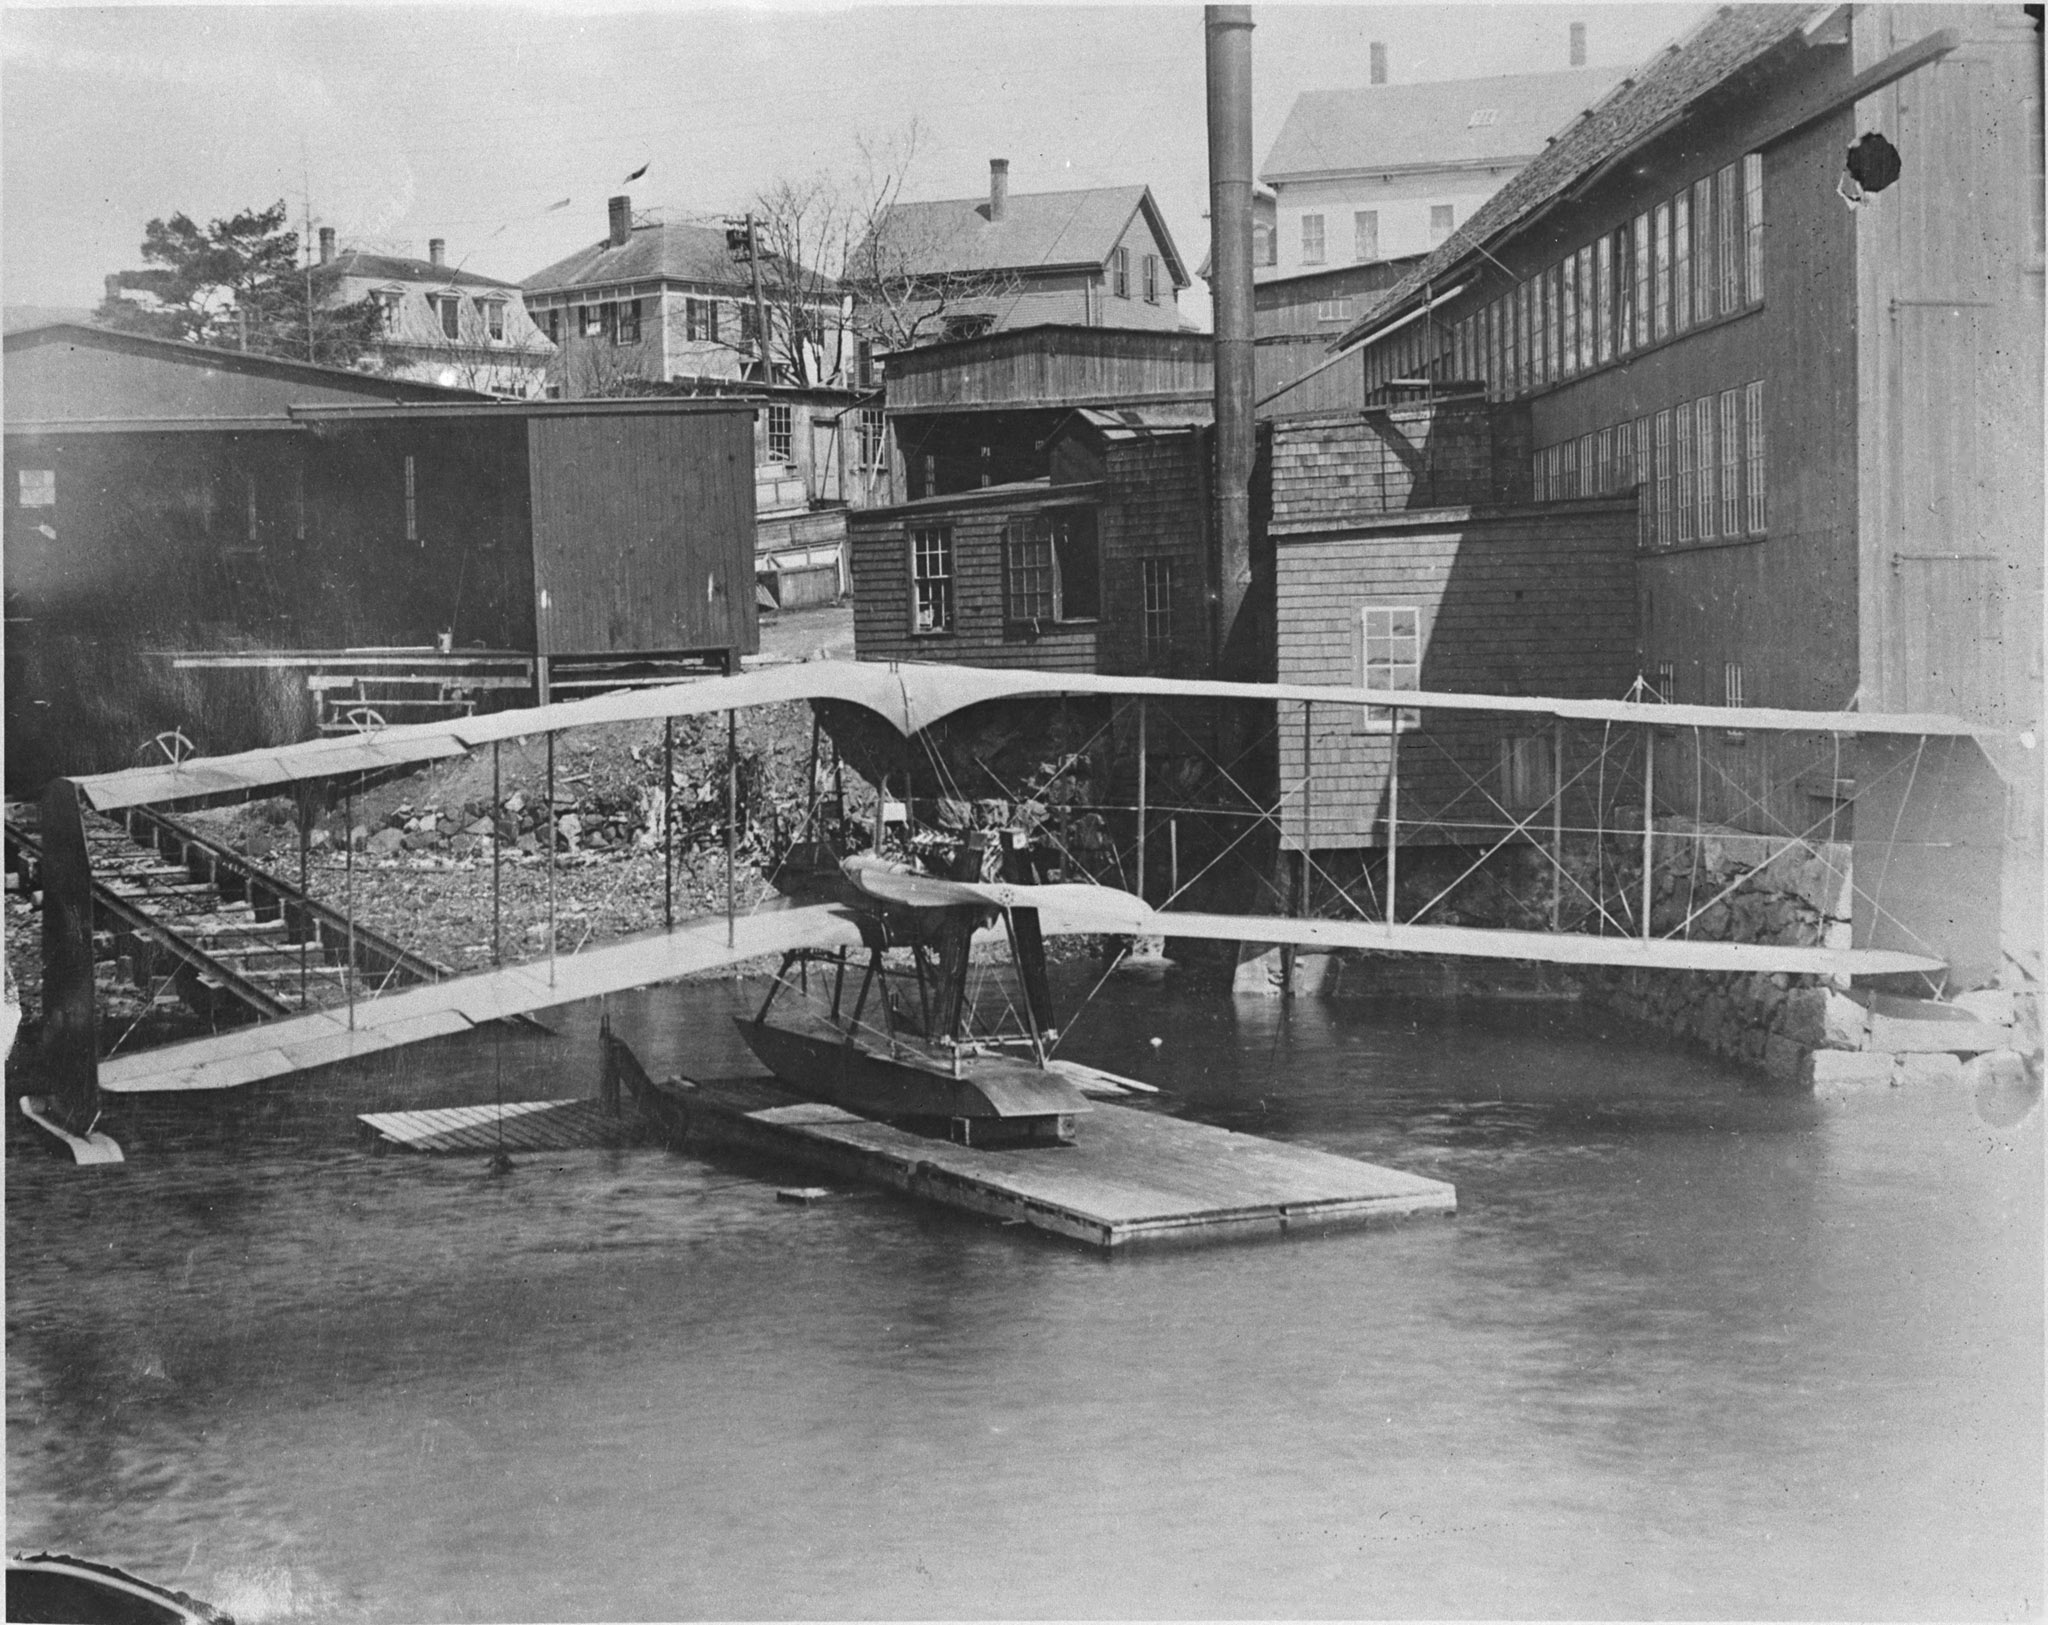 The Burgess-Dunne floatplane, Canada's first military aircraft, rests on a floating dock. PHOTO: DND Archives, PL-115112